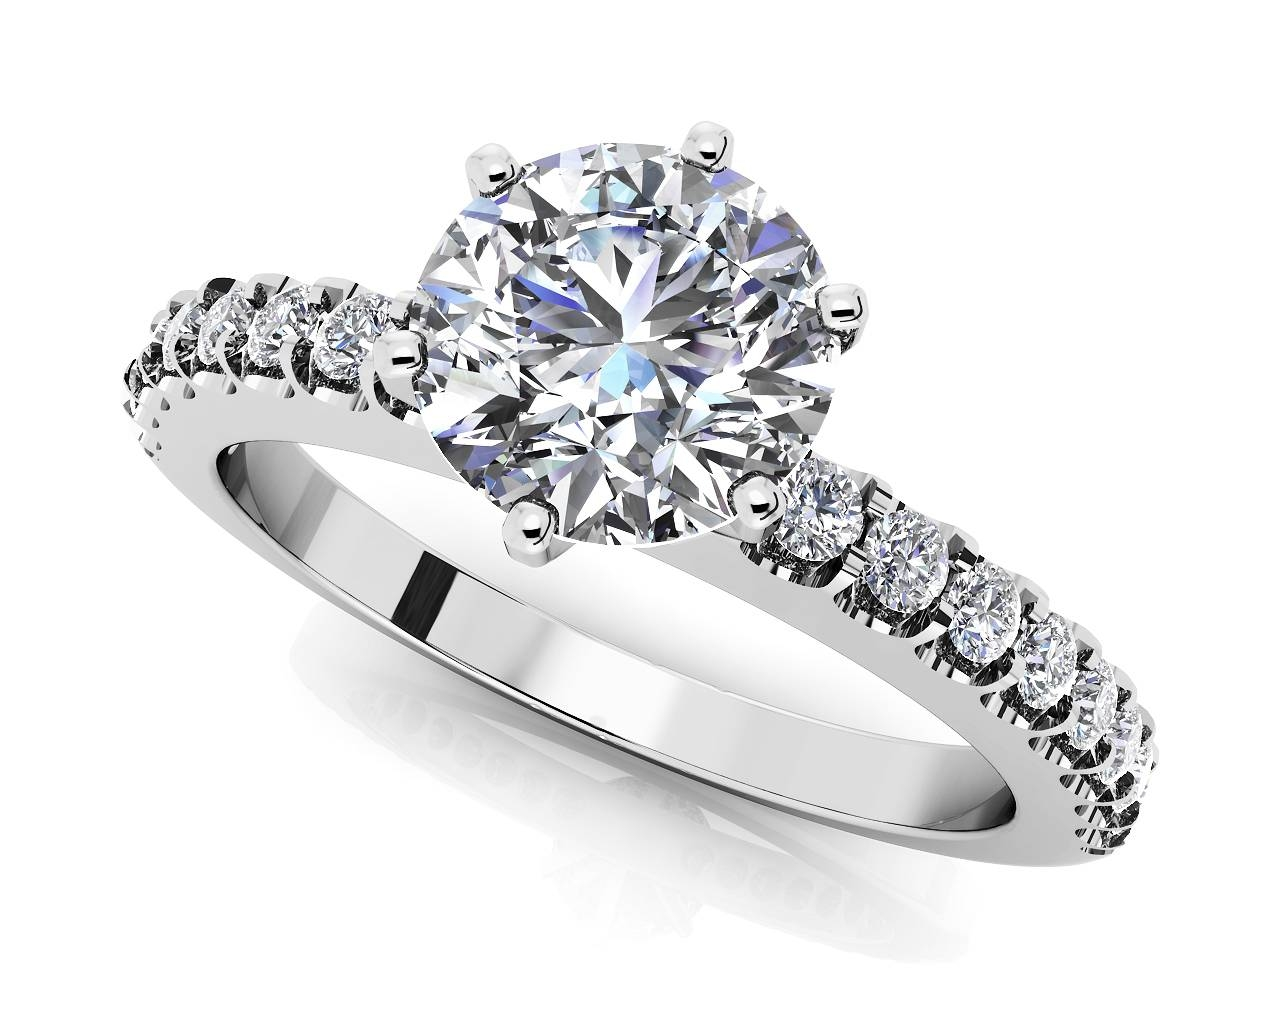 Customize Your Own High Quality Diamond Engagement Ring With Regard To Diamonds Engagement Rings (View 6 of 15)